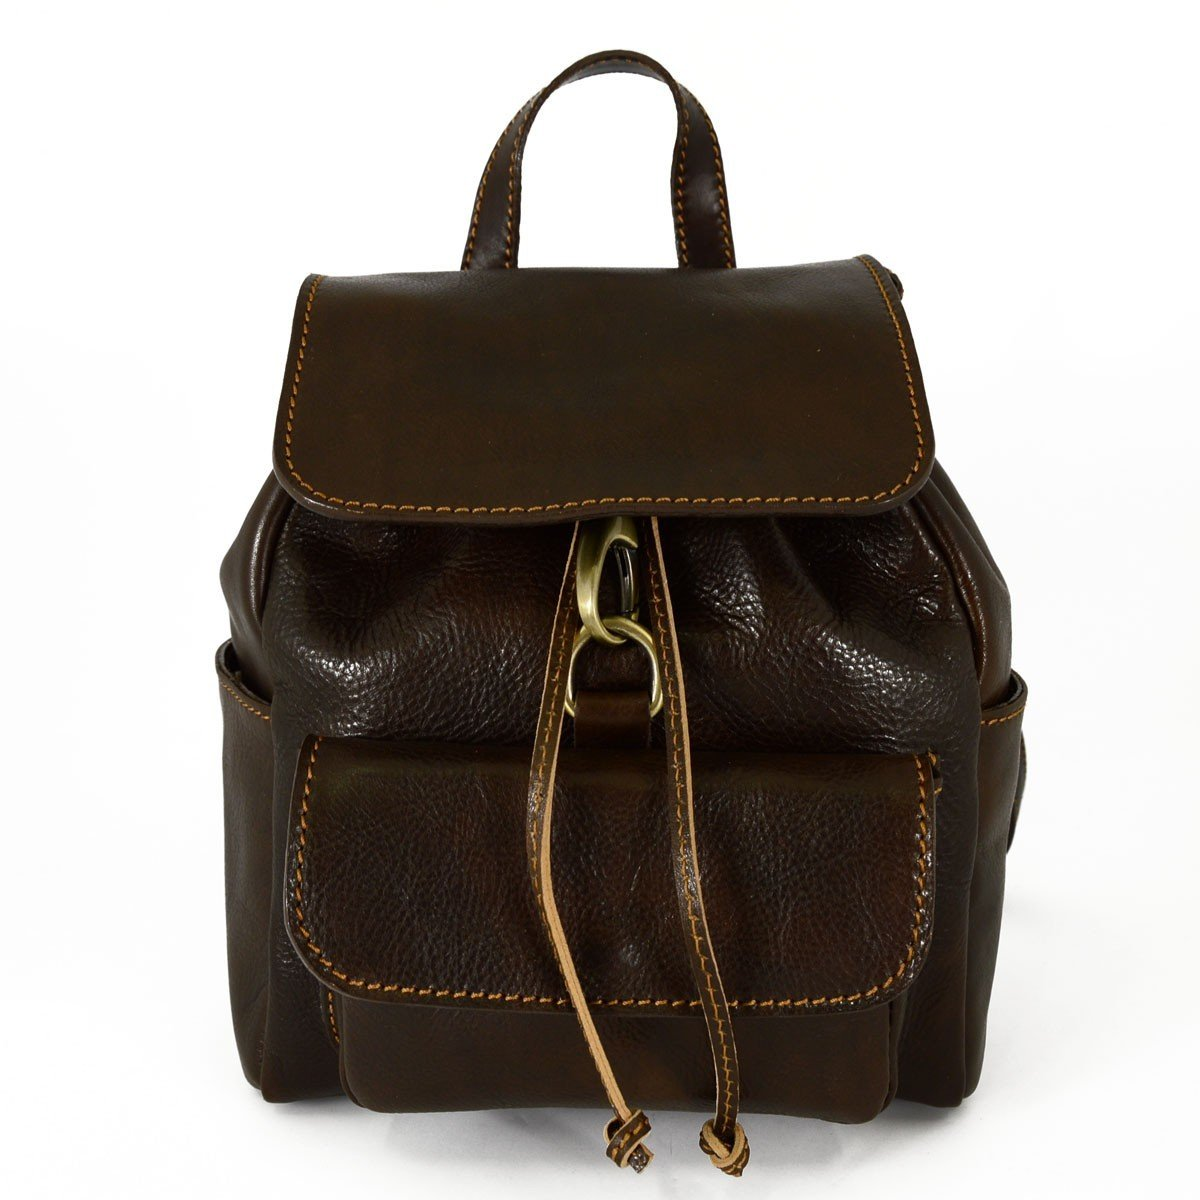 Made In Italy Genuine Leather Backpack With Carabiner And Adjustable Straps Color Dark Brown - Backpack B01E4Y6PYW